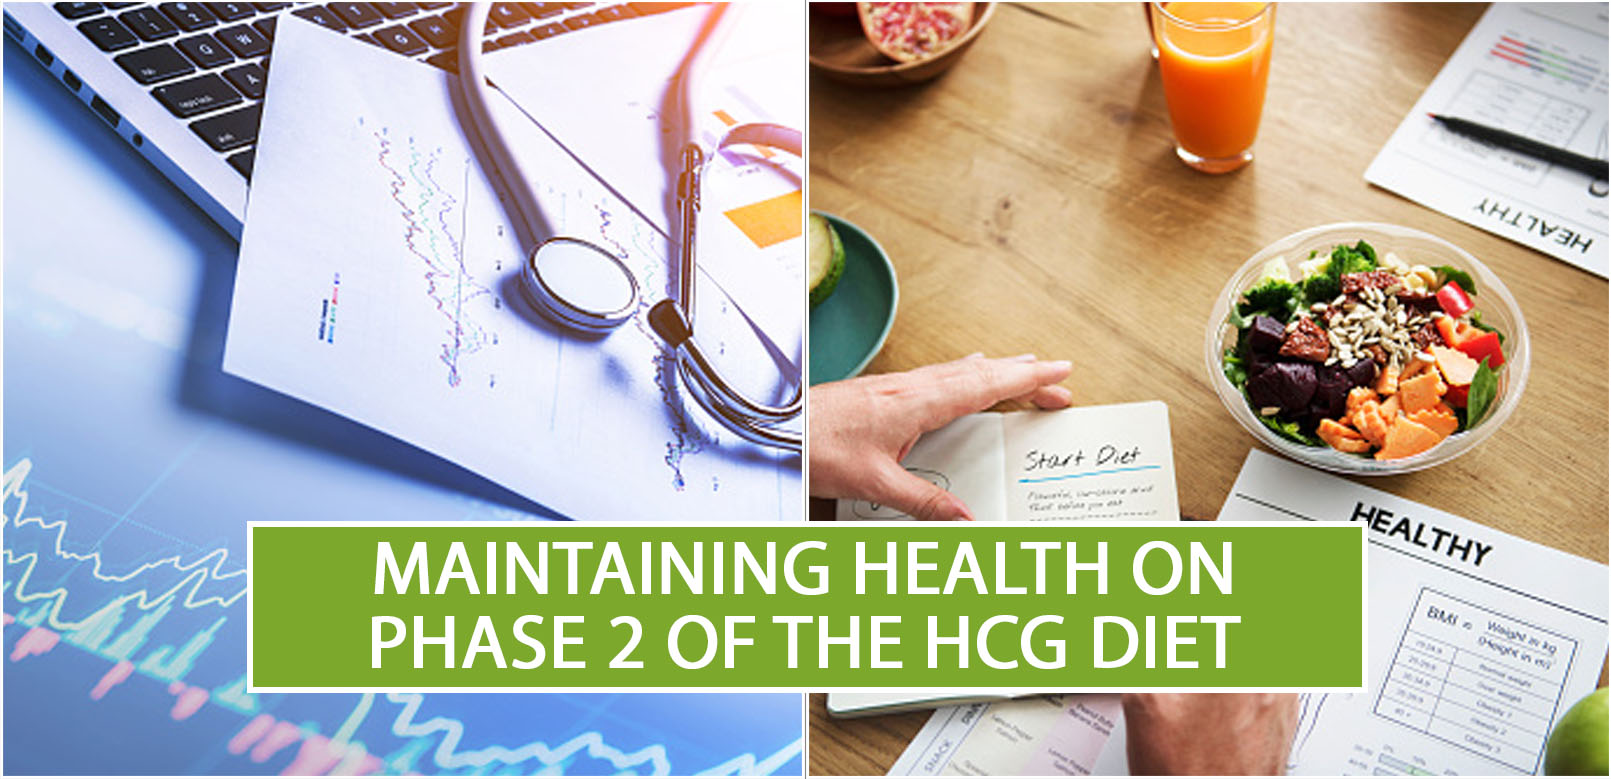 MAINTAINING HEALTH ON PHASE 2 OF THE HCG DIET